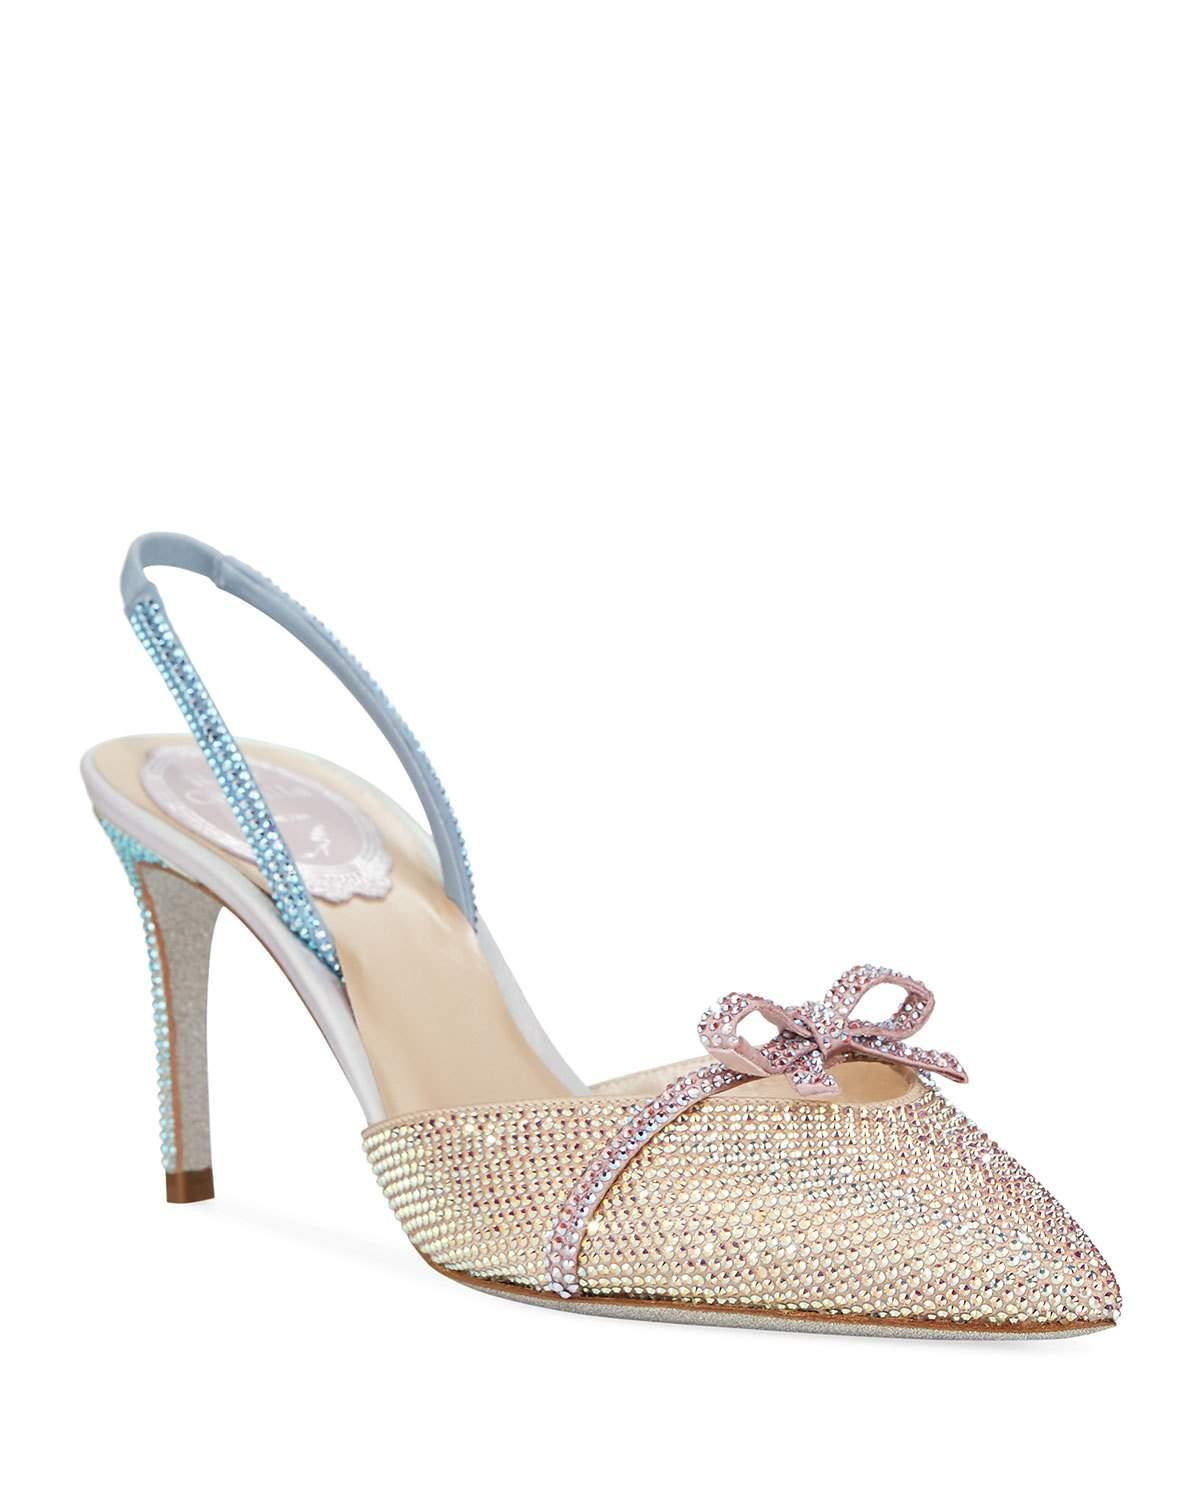 e1318e5d447e Lyst - Rene Caovilla Strass Crystal-embellished Bow Pumps in Natural